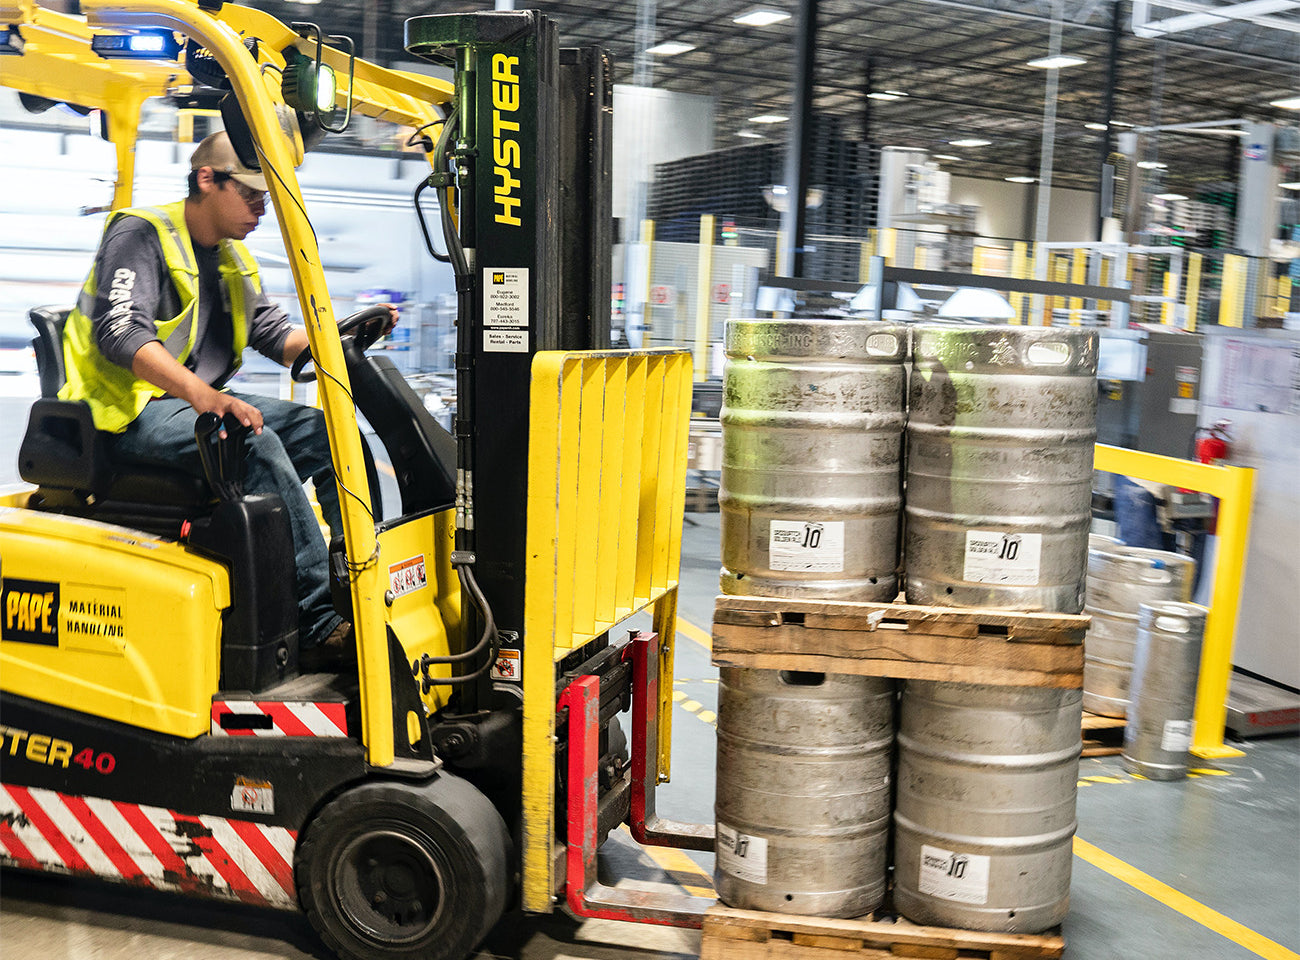 Man driving a forklift around a warehouse